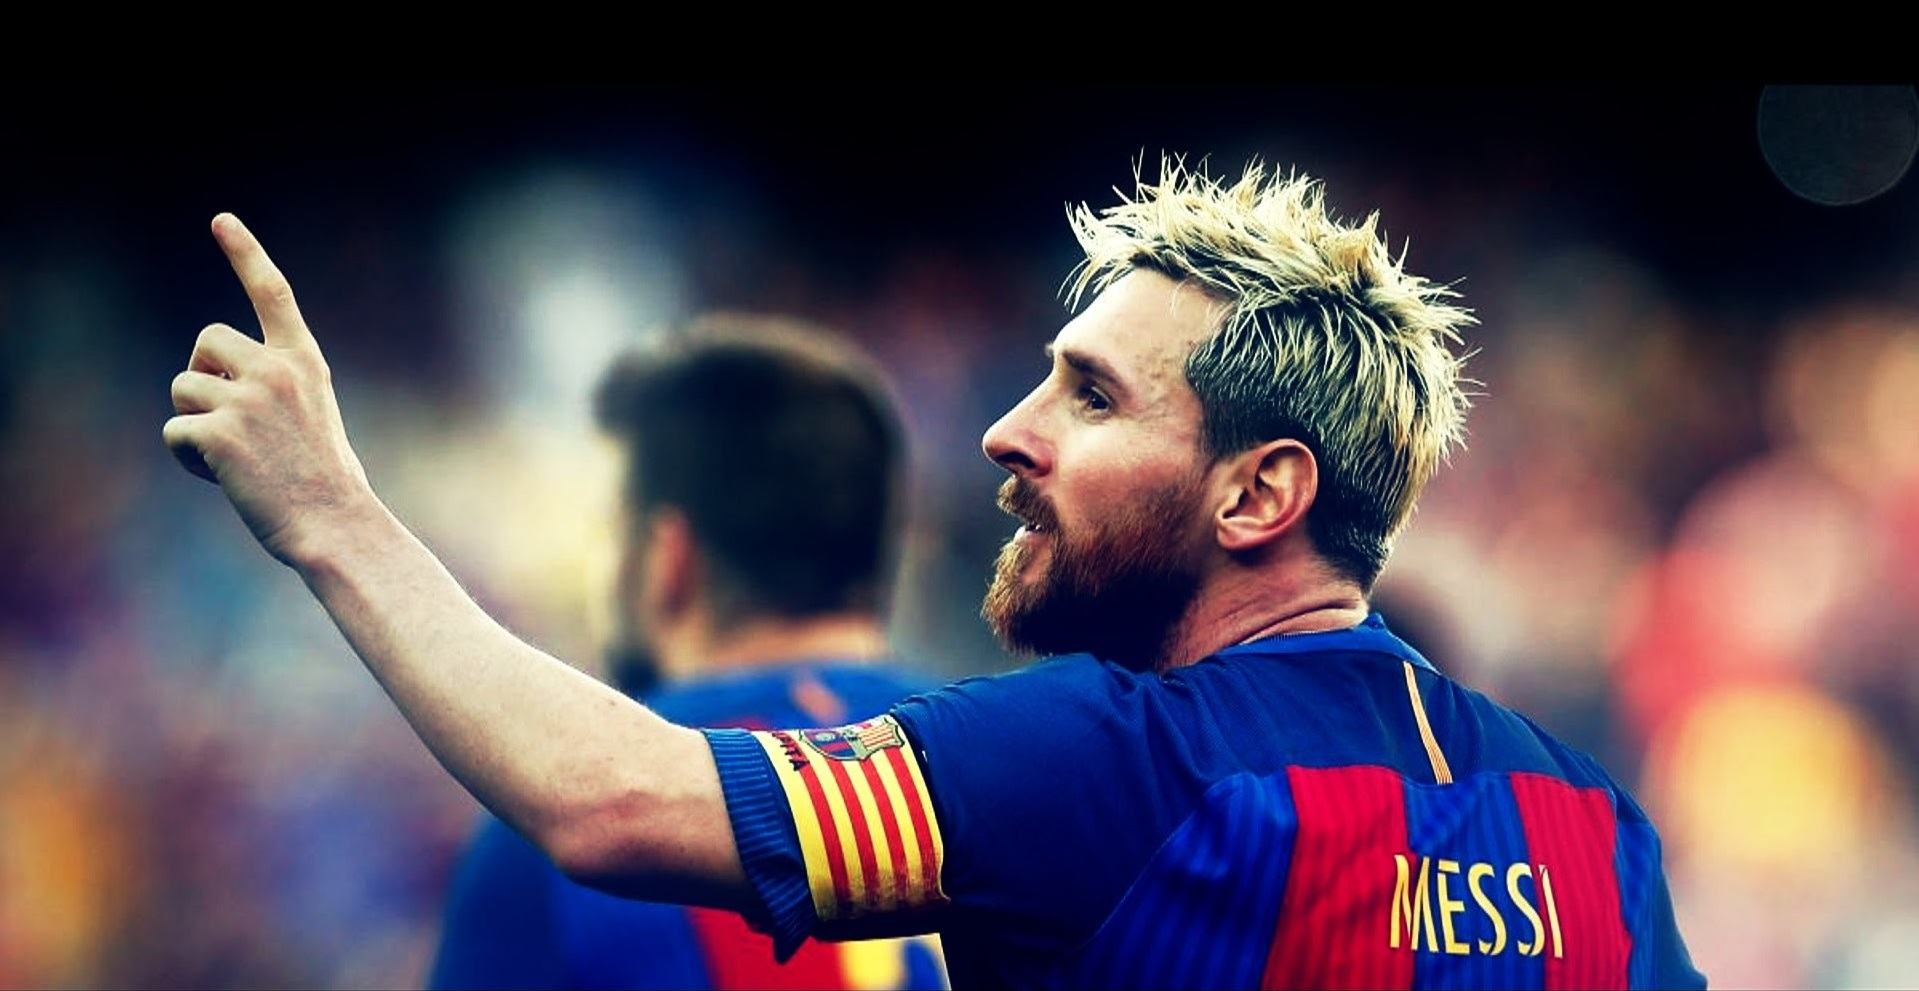 Lionel Messi Wallpapers Photos-messi - Hd Wallpapers Of Messi , HD Wallpaper & Backgrounds